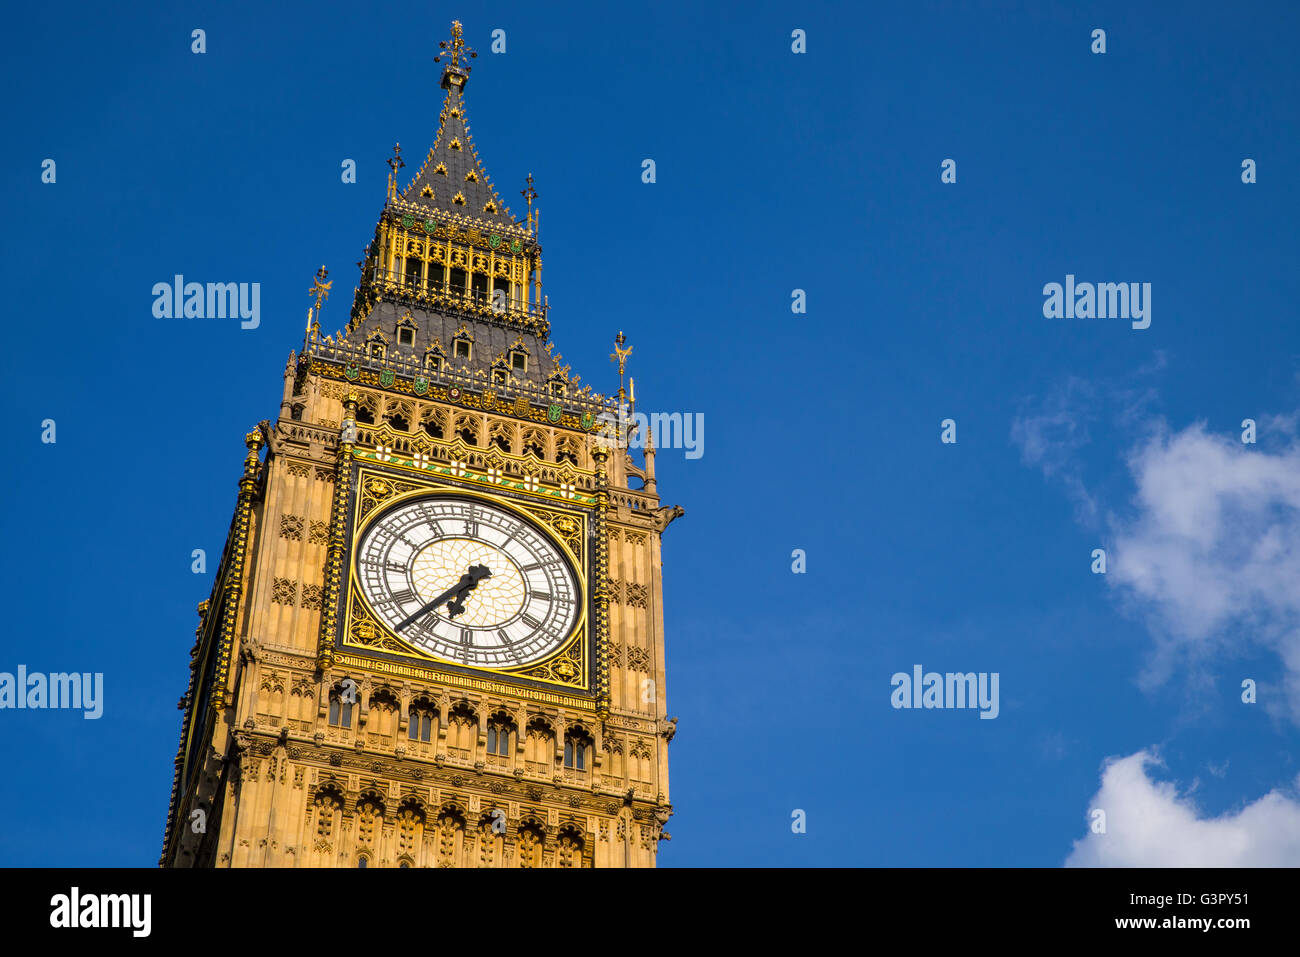 The Elizabeth Tower, which contains the iconic bell named Big Ben, at the Houses of Parliament in London. - Stock Image